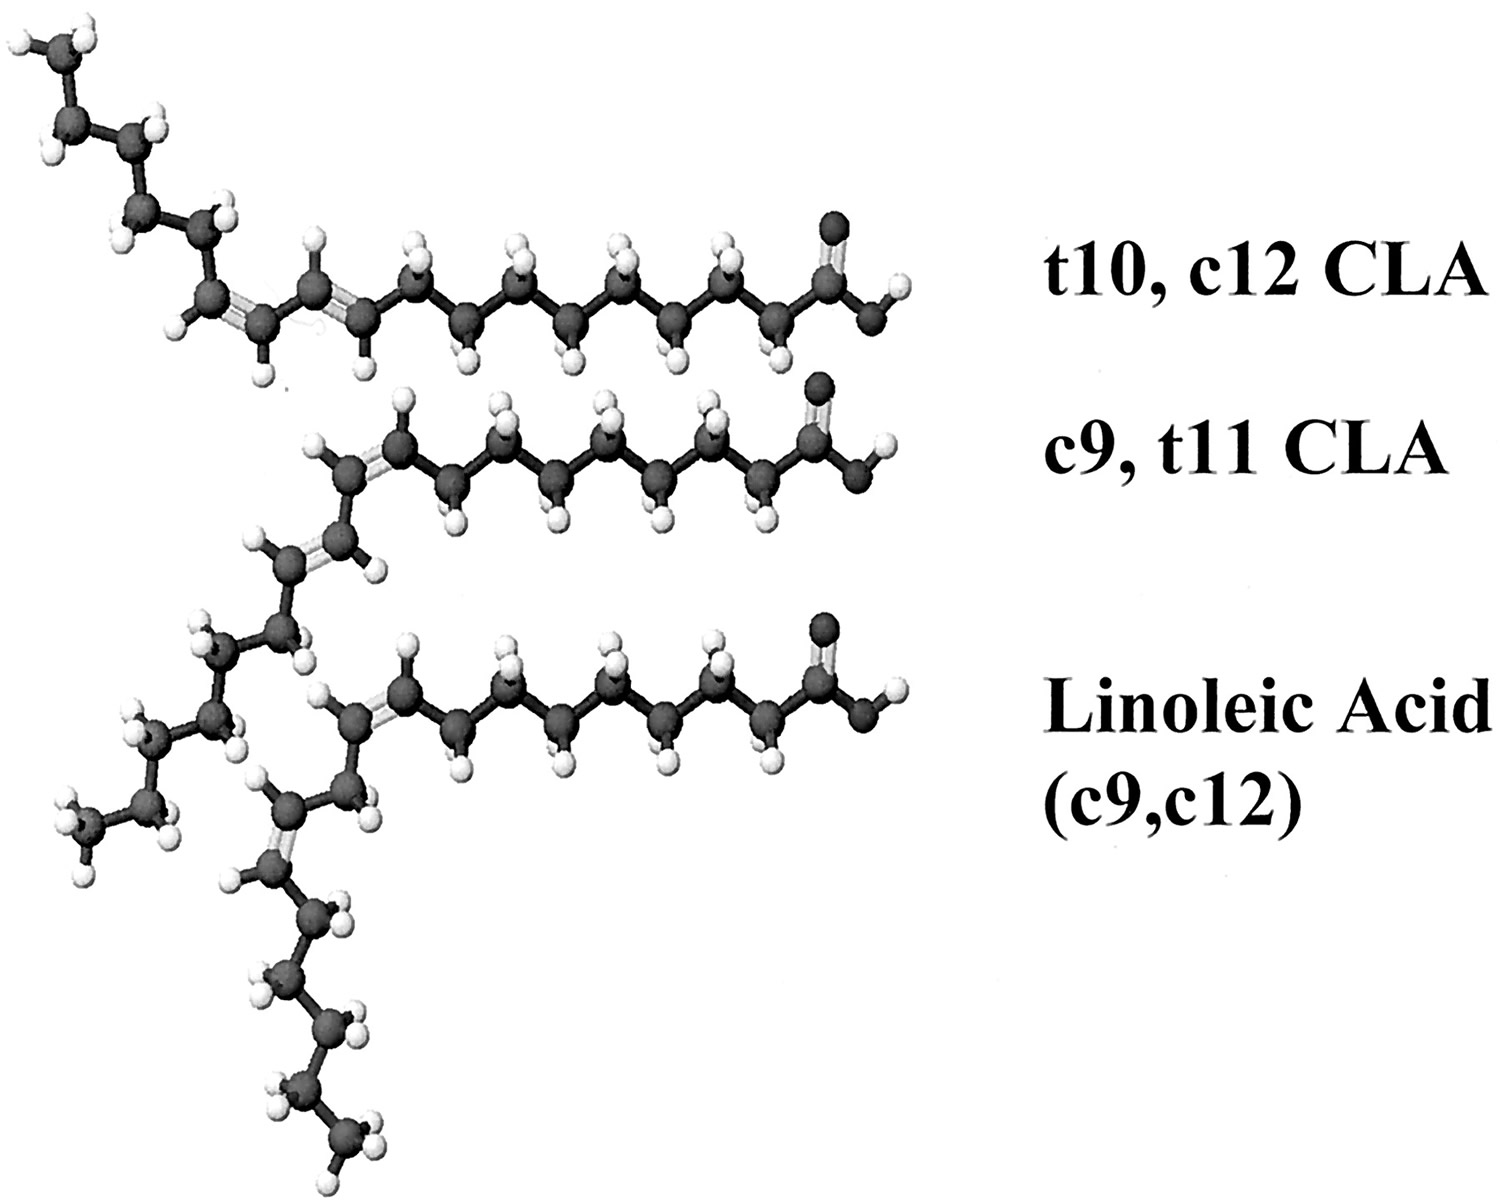 cla - conjugated linoleic acid isomers